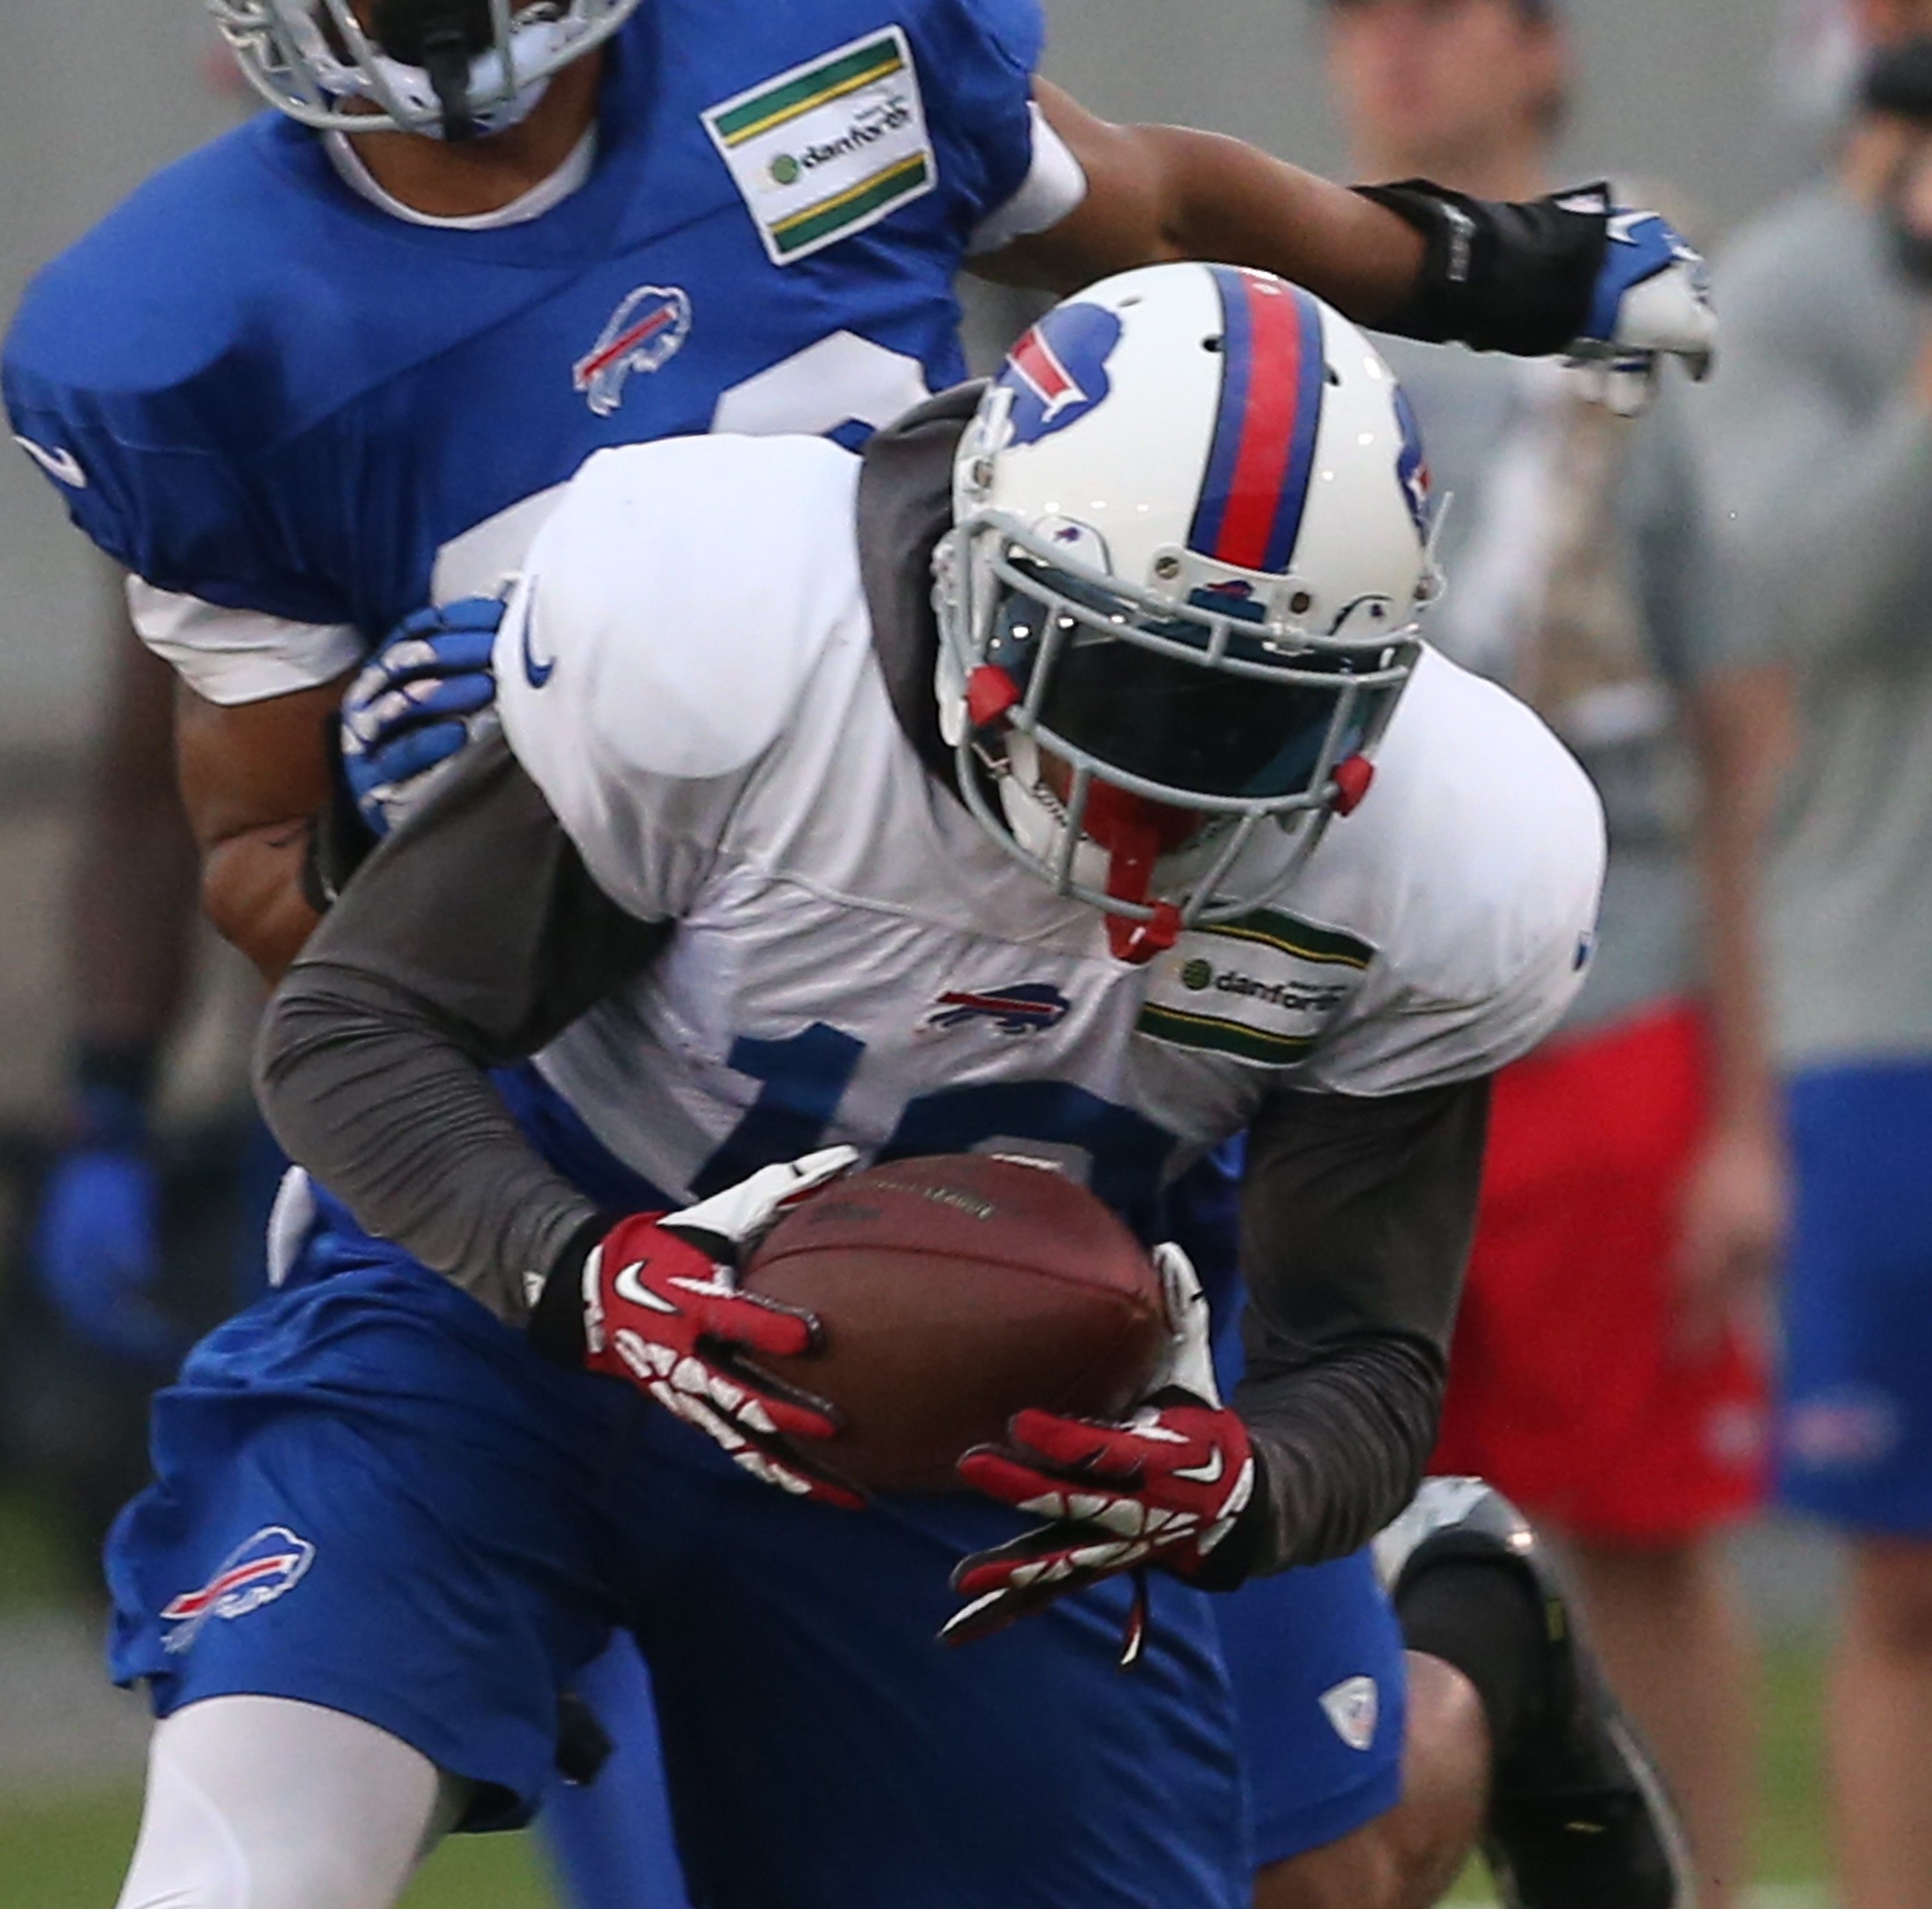 Buffalo Bills wide receiver Robert Woods said he did not know why he was out of the starting lineup in Sunday's preseason game.